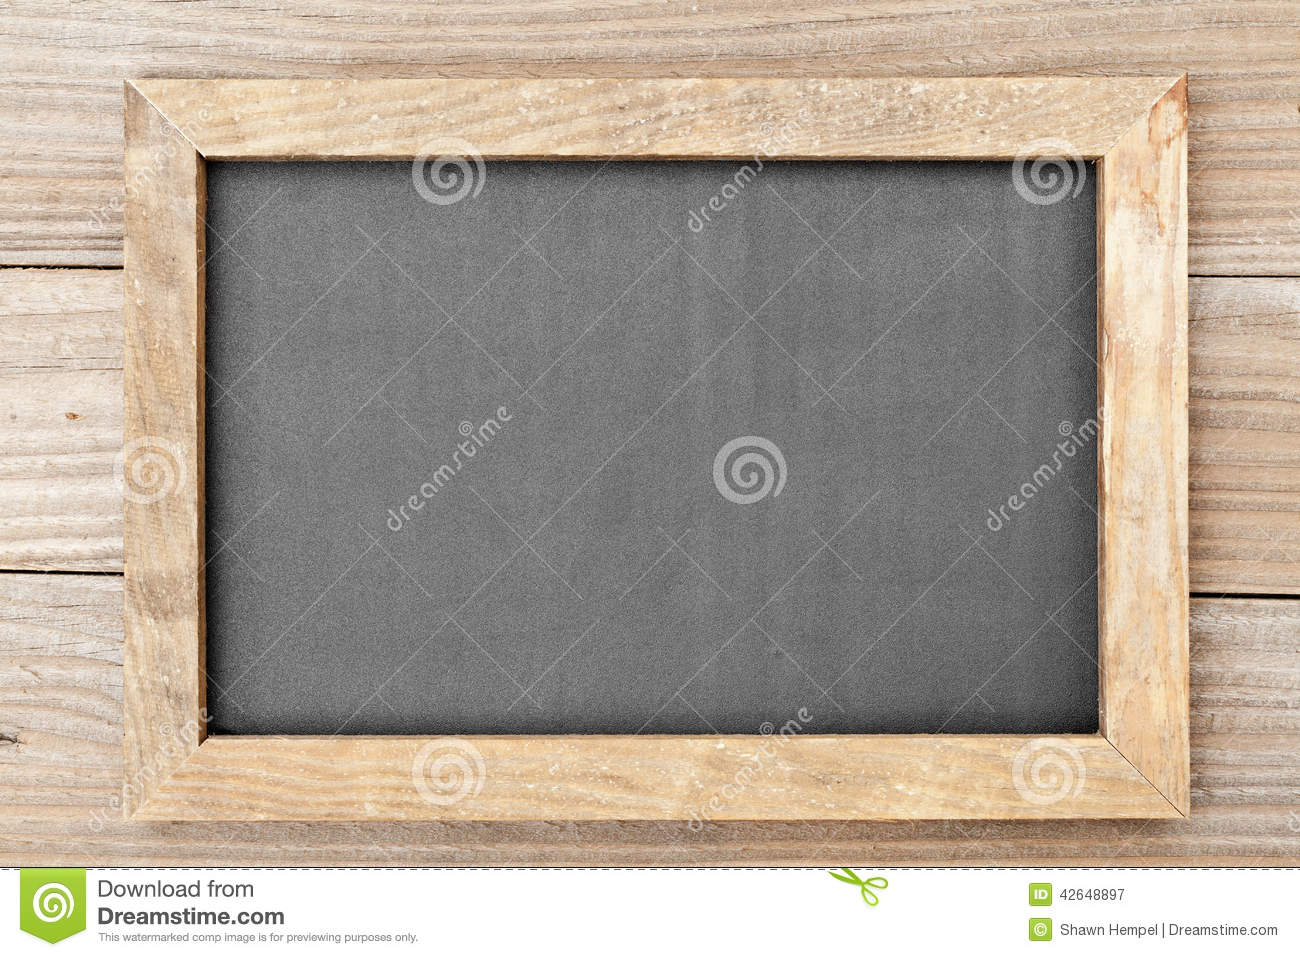 Clean Chalkboard On Wooden Table Stock Photo Image: 42648897